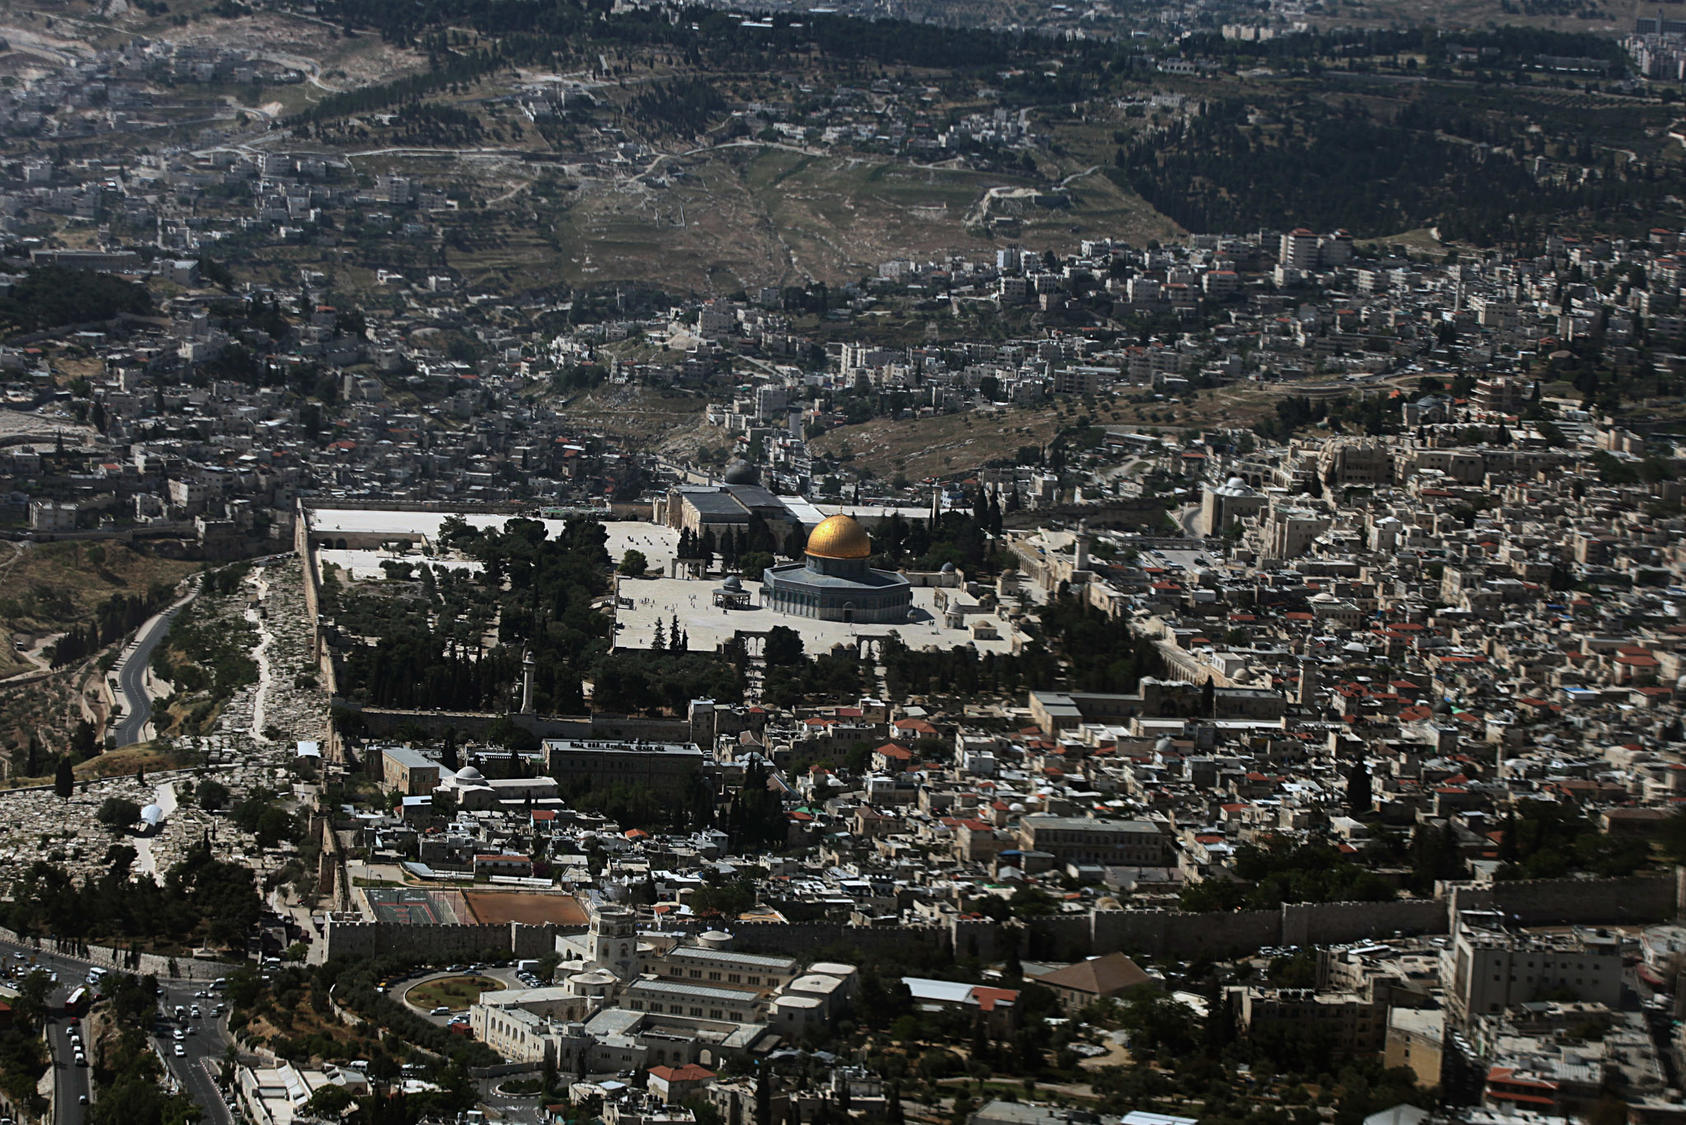 An aerial view of the Old City of Jerusalem, with the Al-Aqsa Mosque at the cente